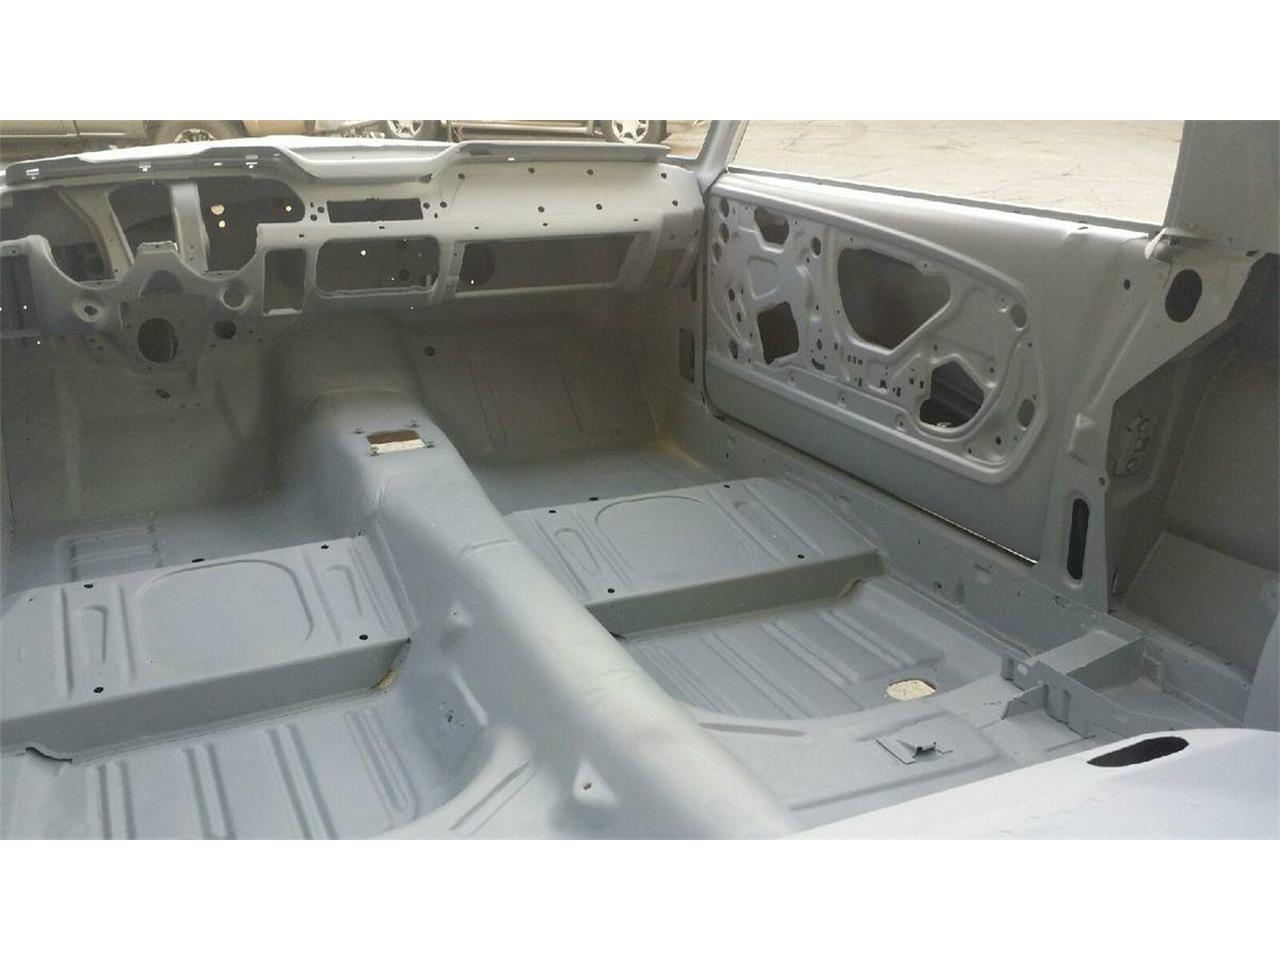 Large Picture of Classic '68 Mustang Restored Body Shells - $16,700.00 - JP9Q